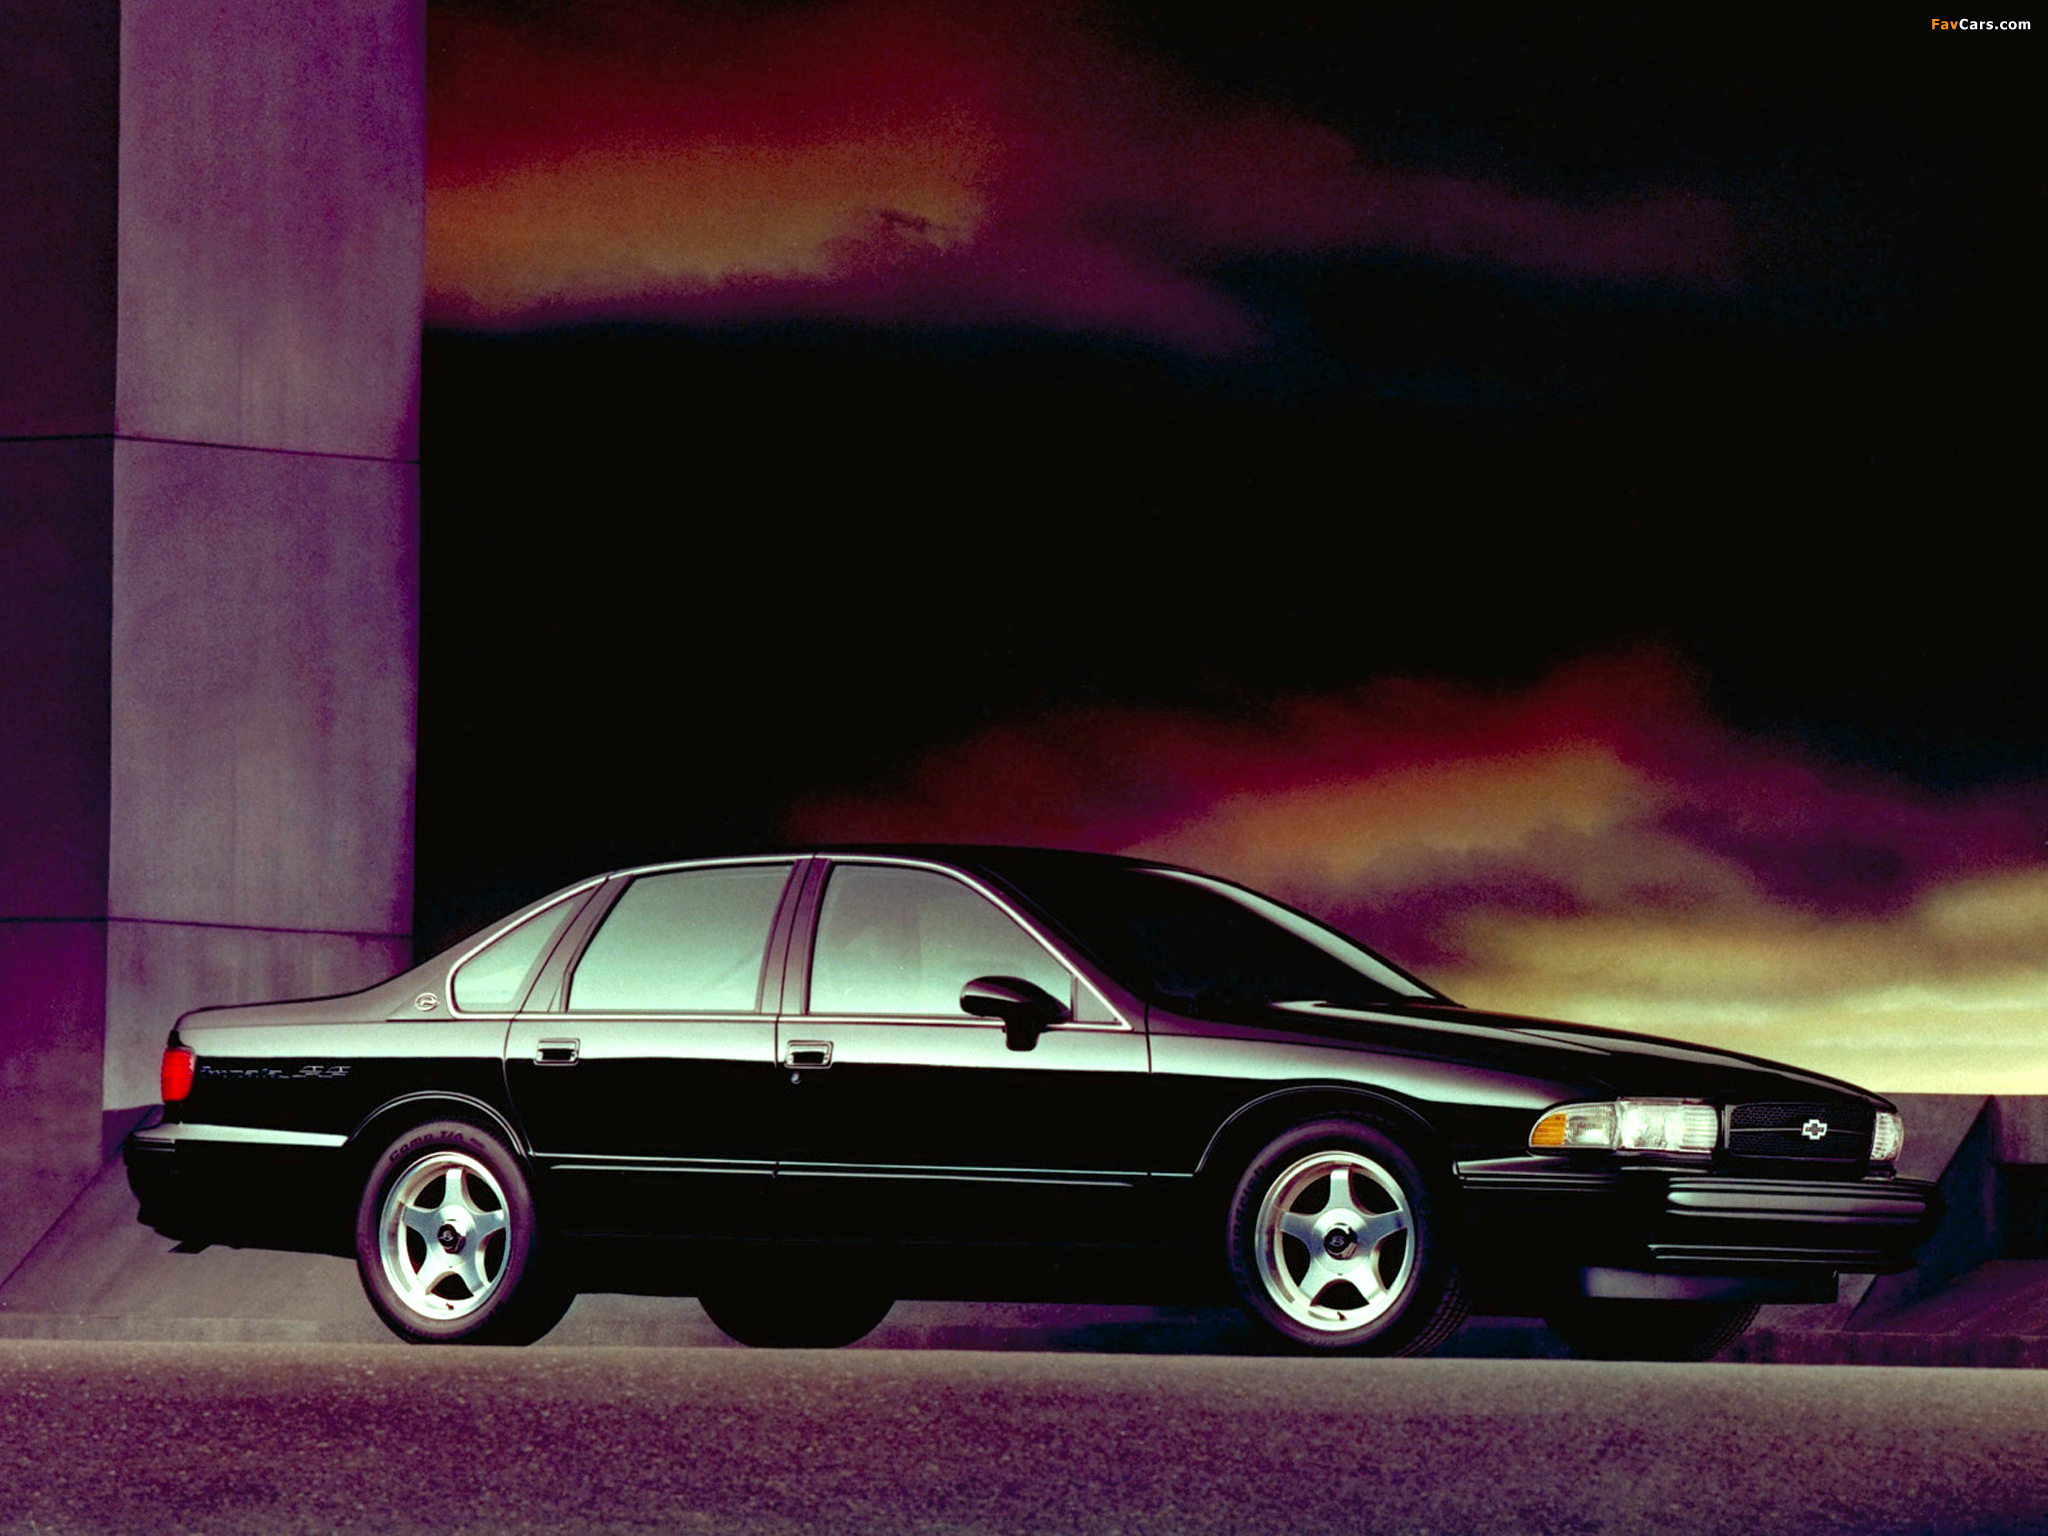 Chevrolet impala ss 1994 96 wallpapers 2048x1536 for Modern american classics